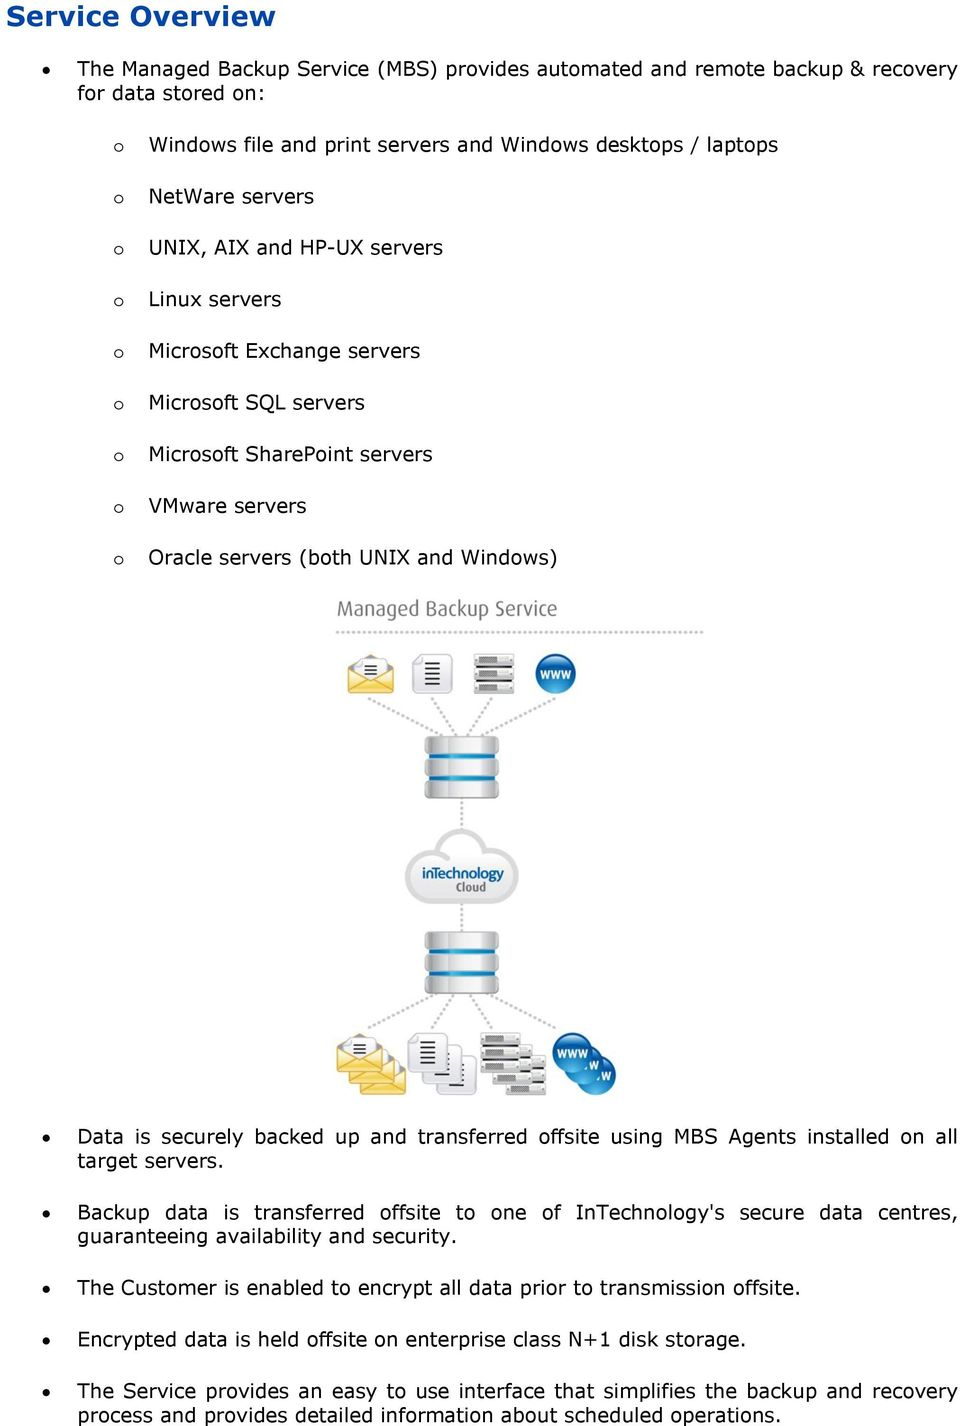 securely backed up and transferred offsite using MBS Agents installed on all target servers.